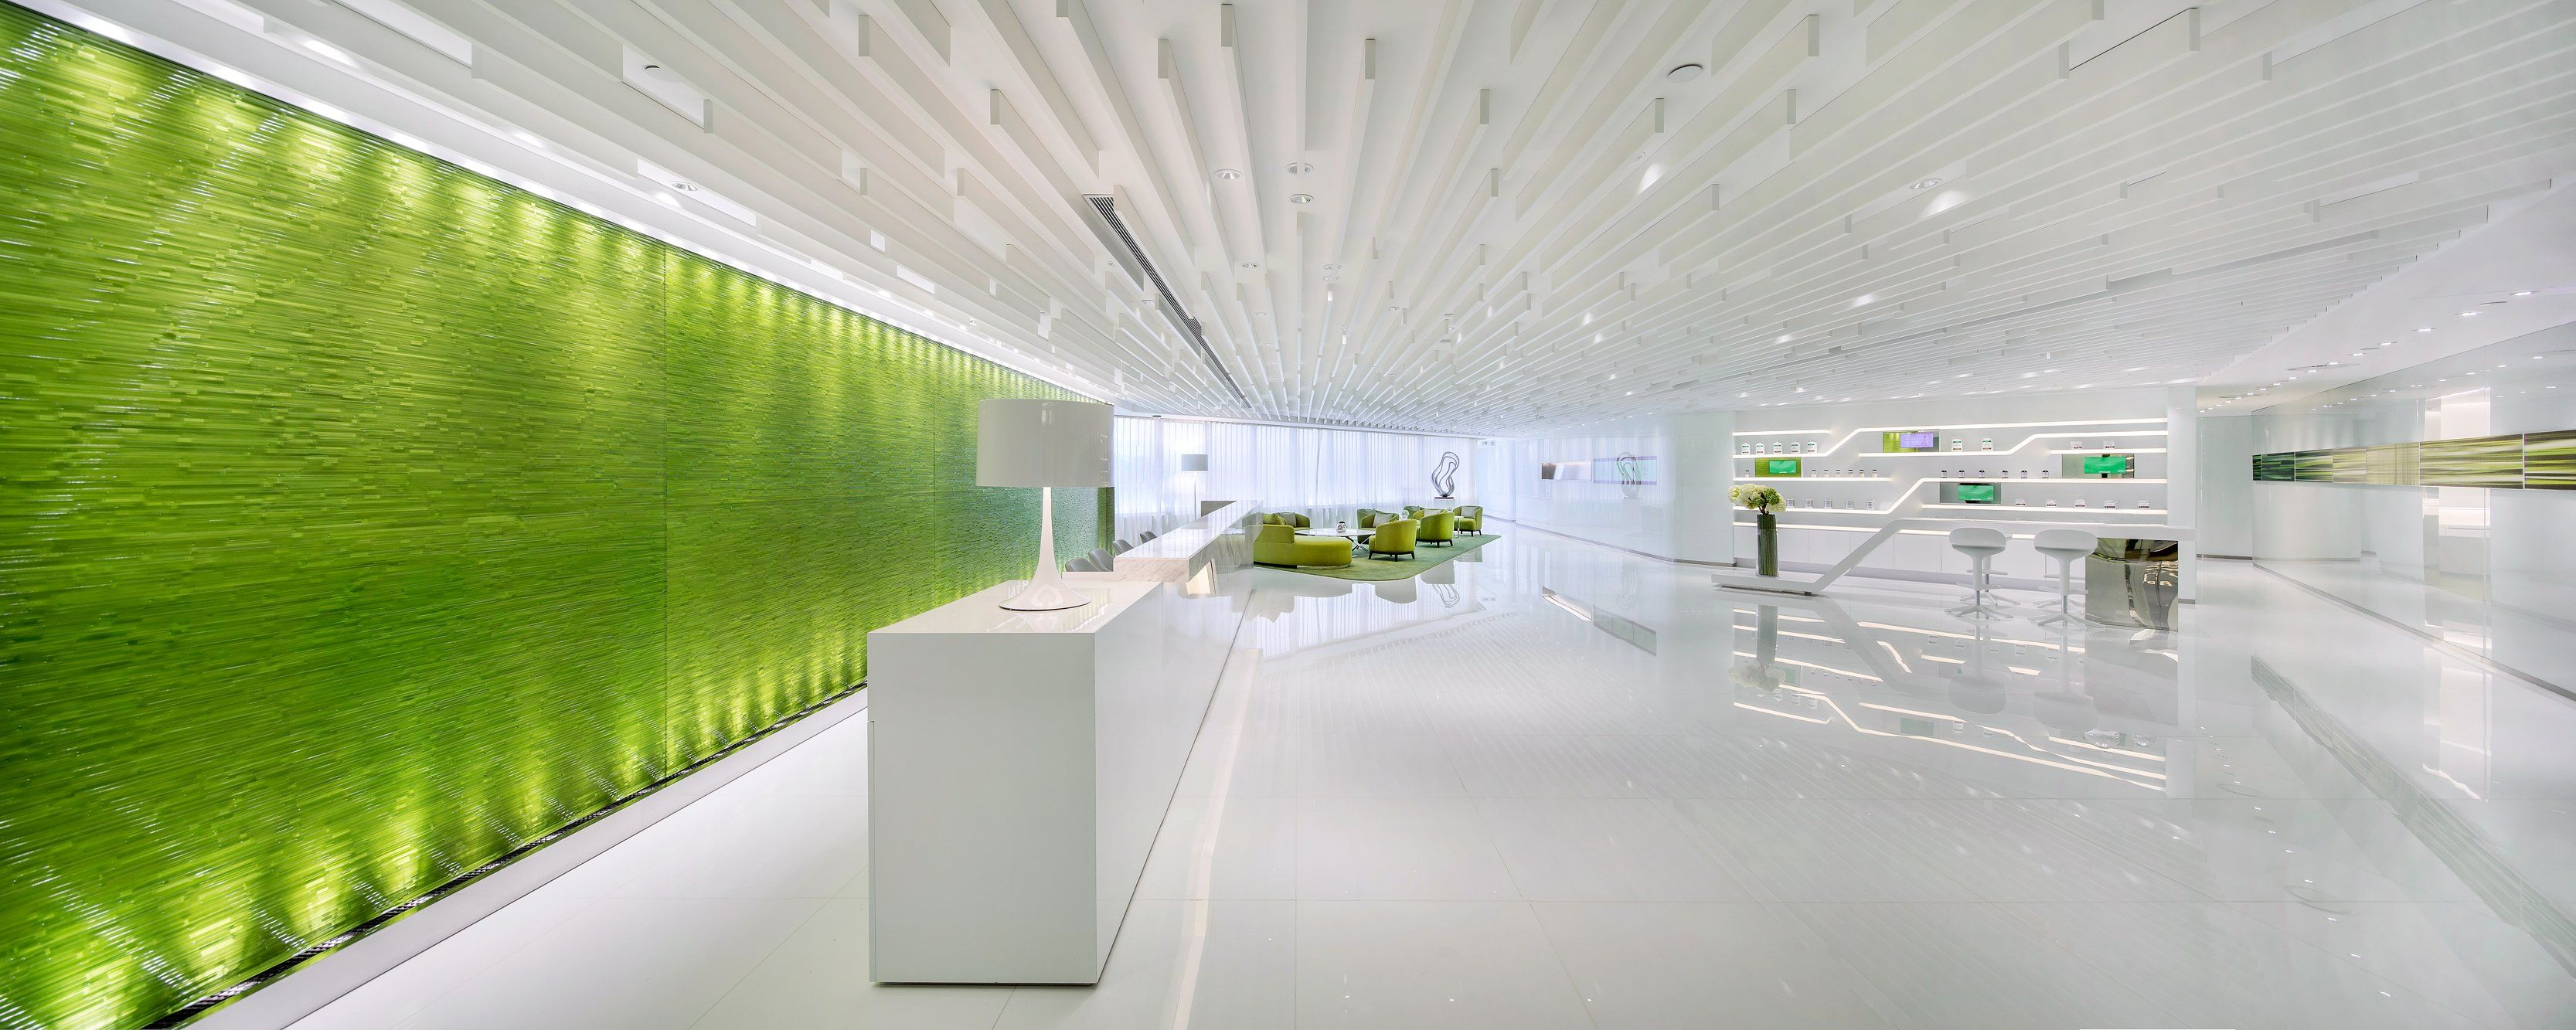 Neo Derm Medical Aesthetic Center In Hong Kong Favorite